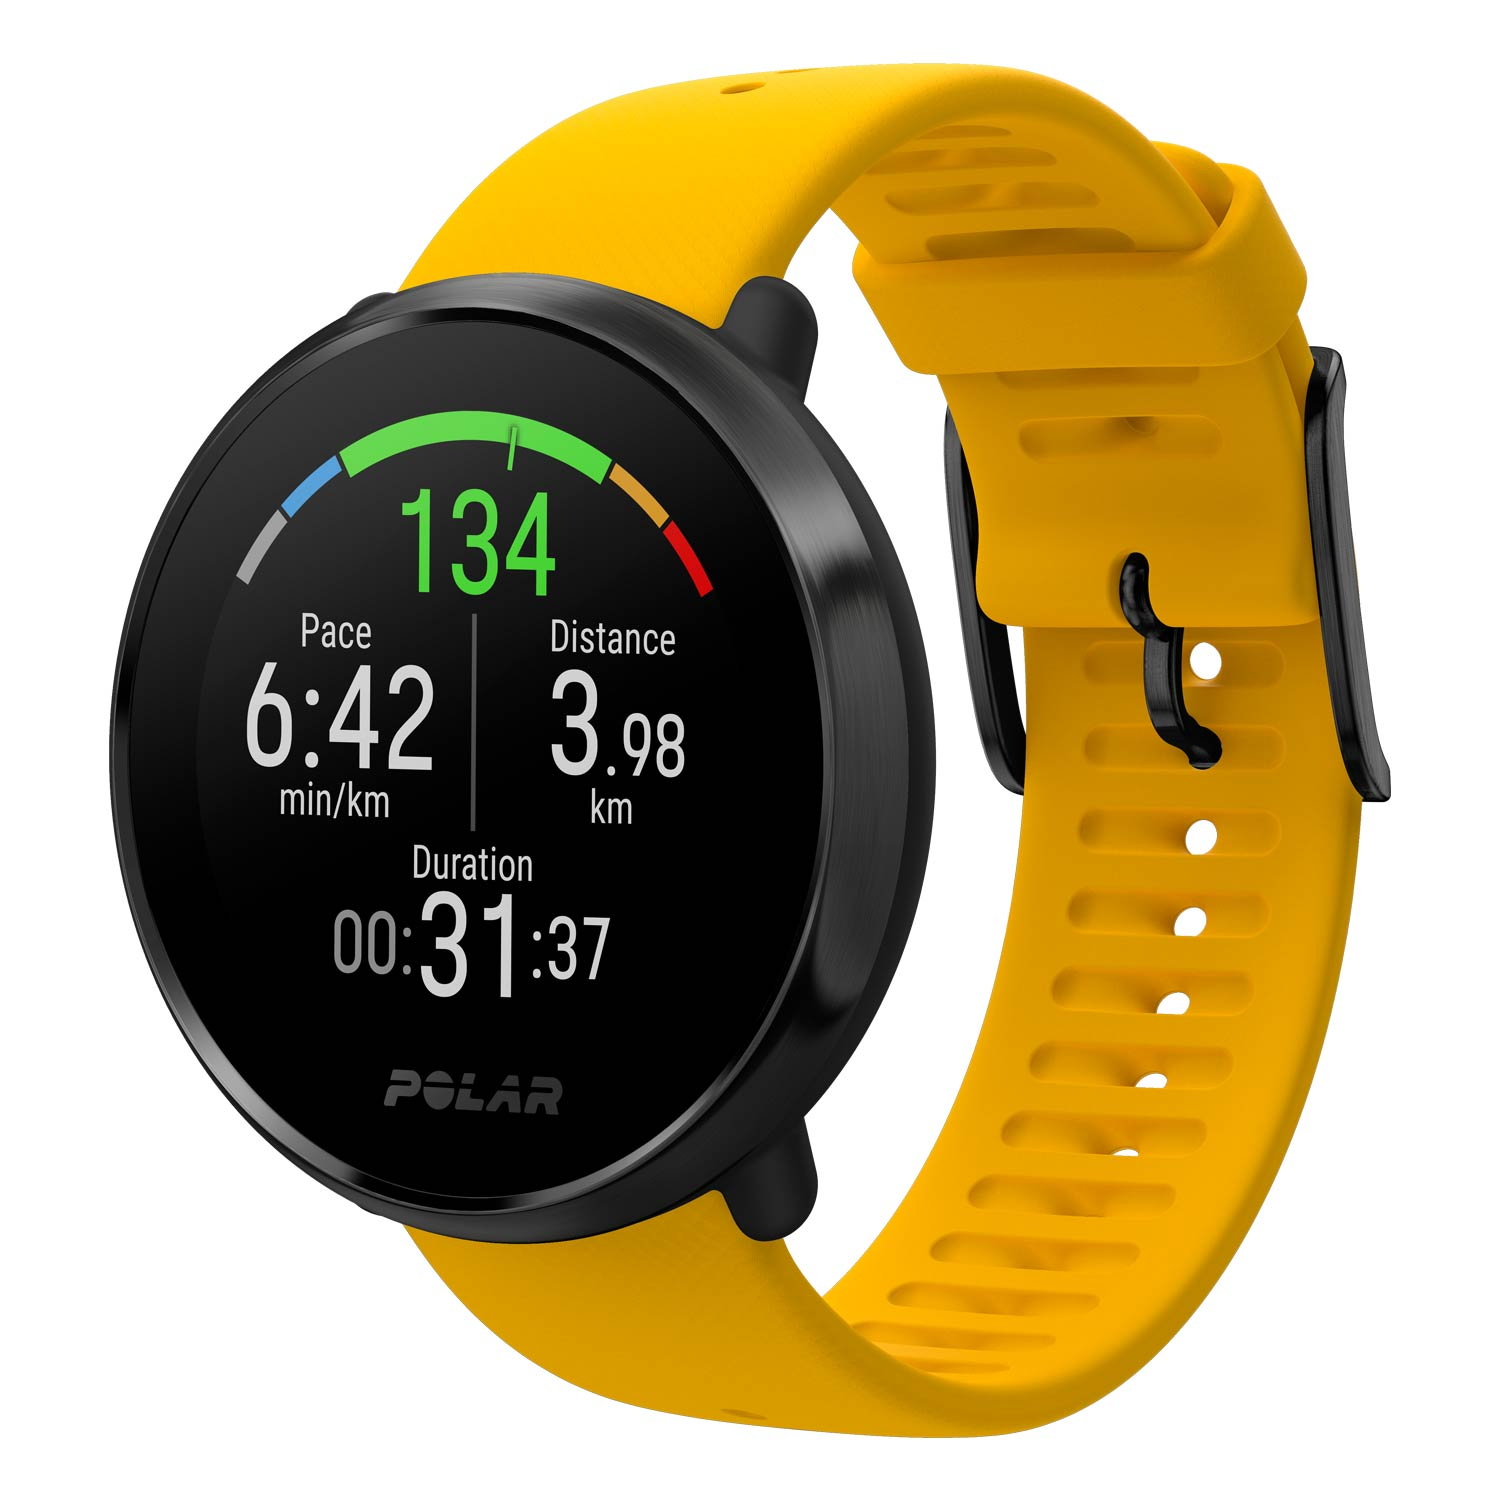 Polar Ignite GPS Fitness Watch with Heart Rate - Yellow, M / L